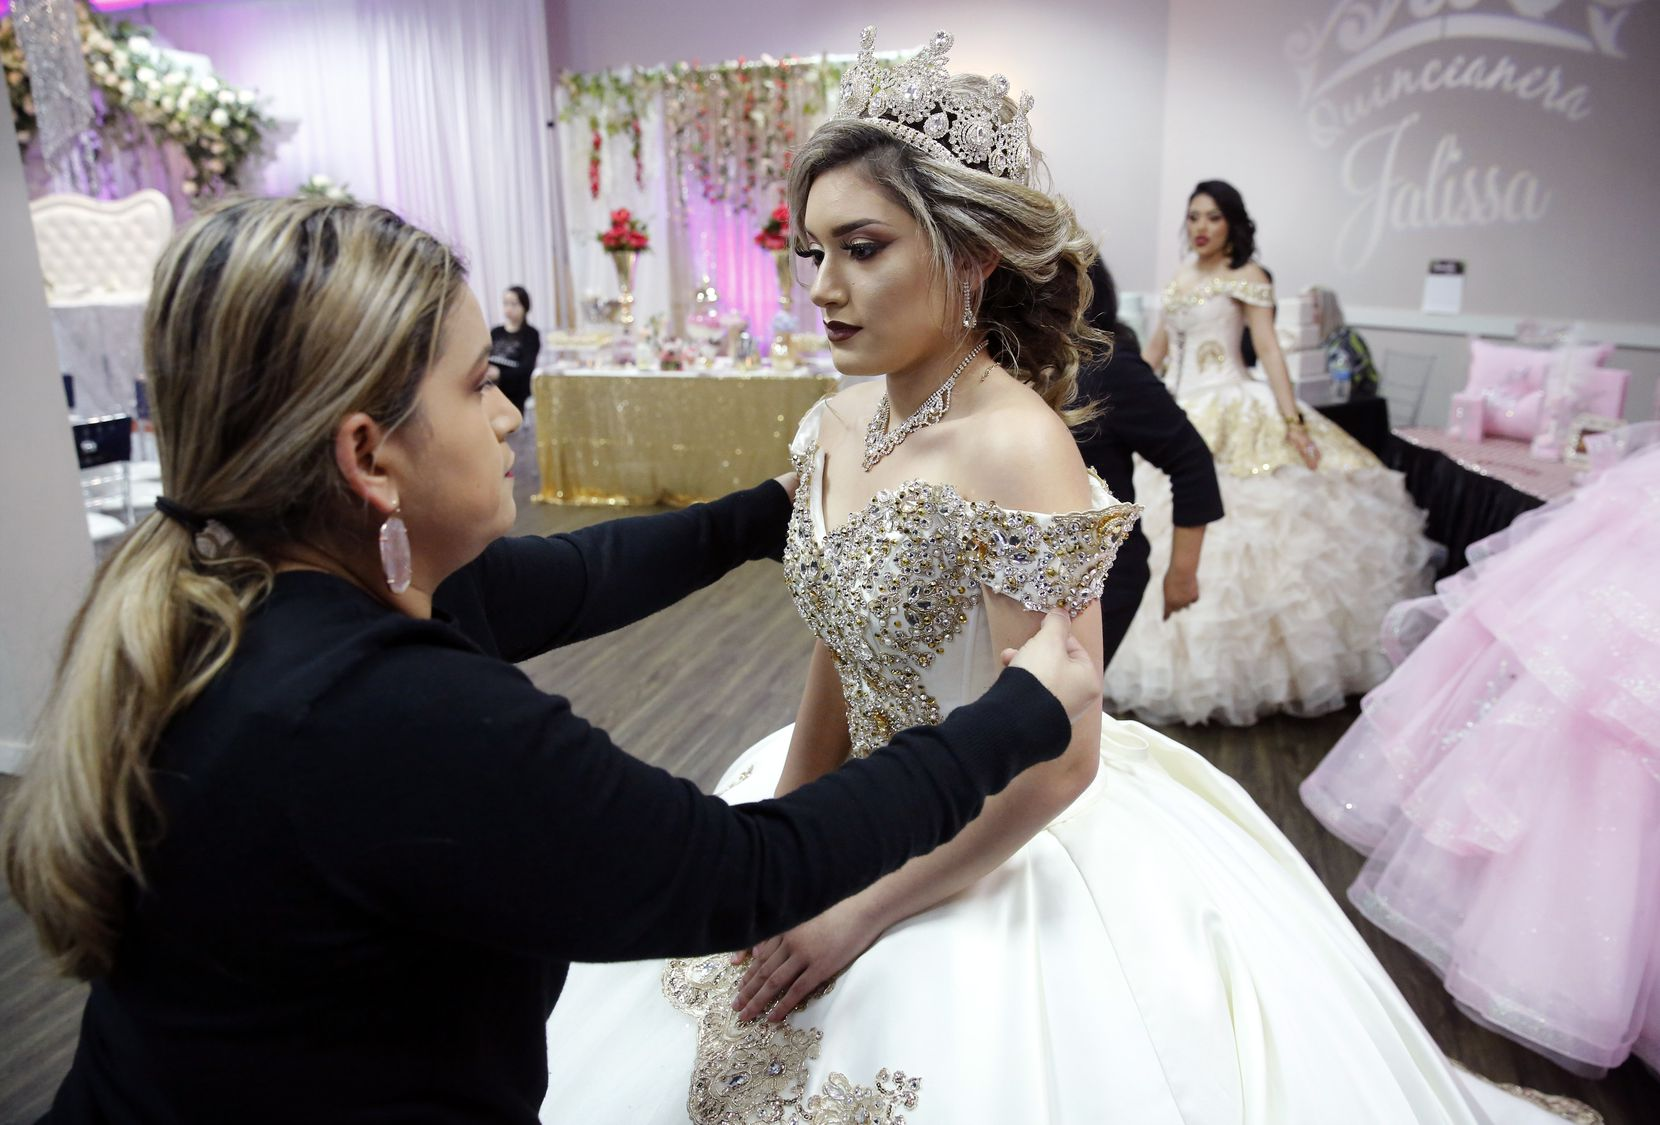 Ana Garcia fixes a quinceañera dress modeled by daughter Jessica Monge during the Las Lomas Quinceañera & Wedding Expo held at the Irving Banquet Halls in Irving, Texas, Sunday March 15, 2020. Attendance was low.